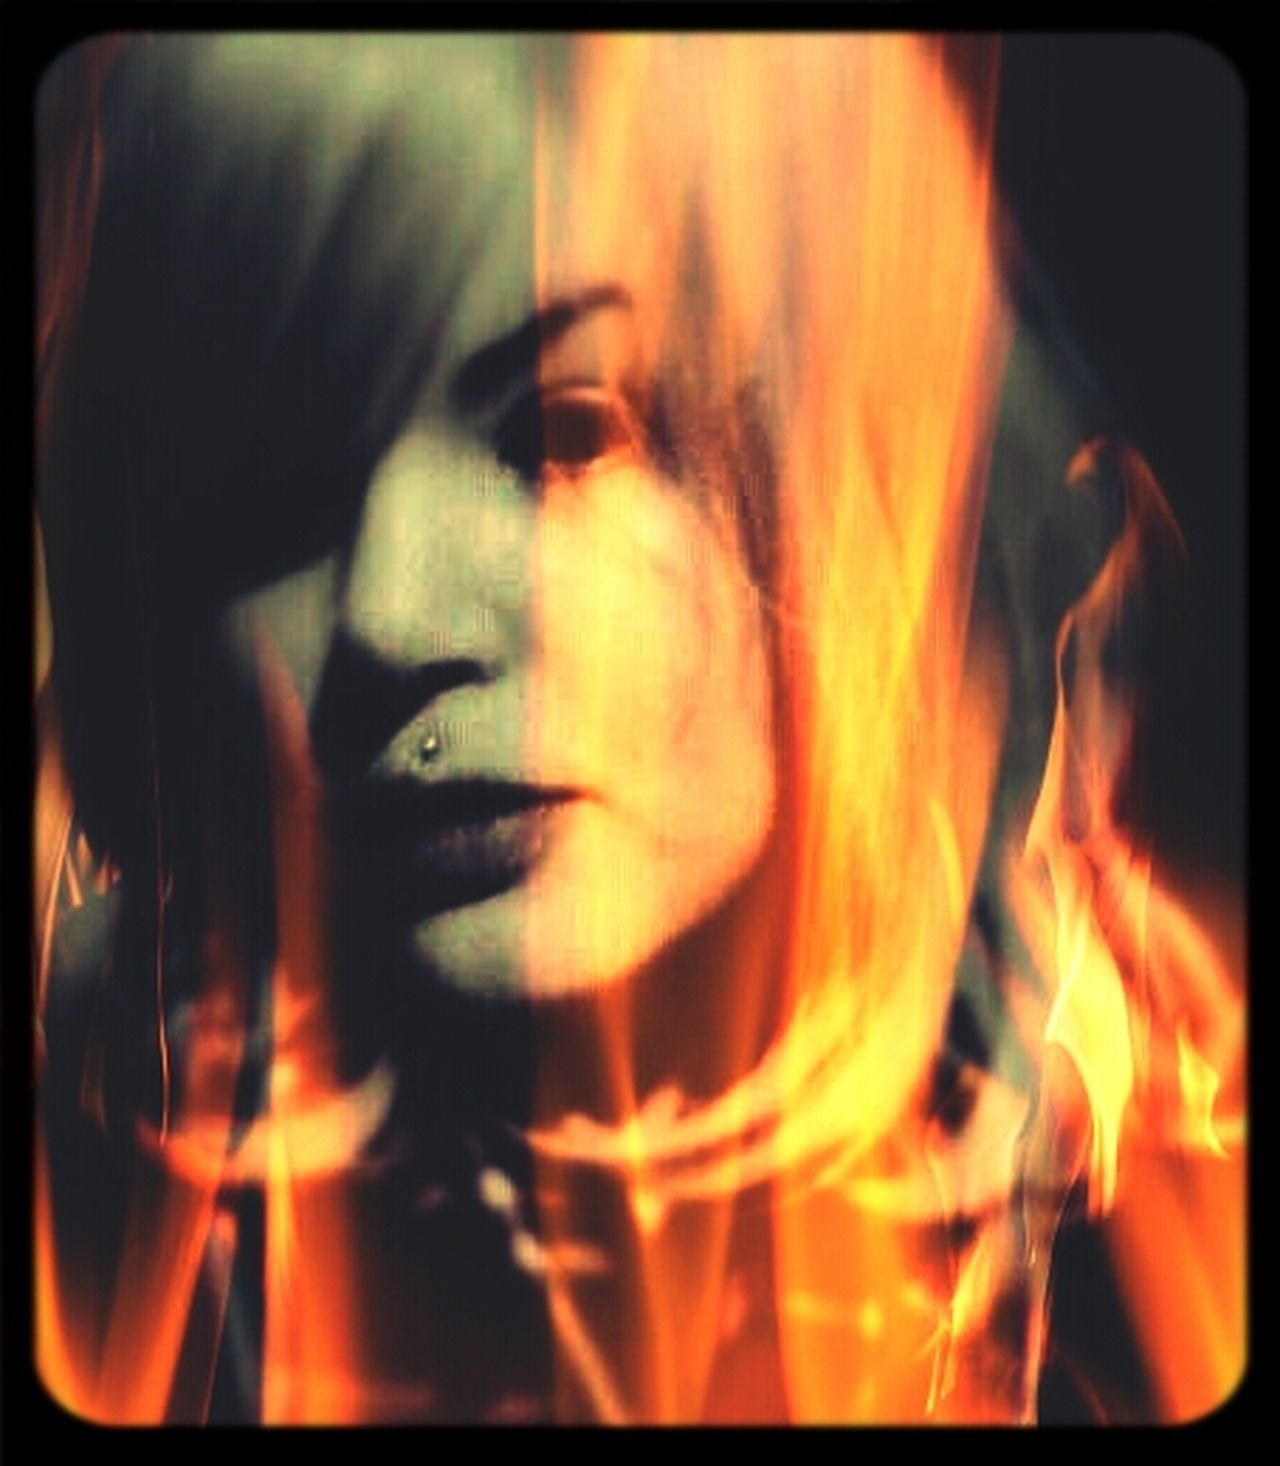 Selfportrait Flames Artistic I'm Burning